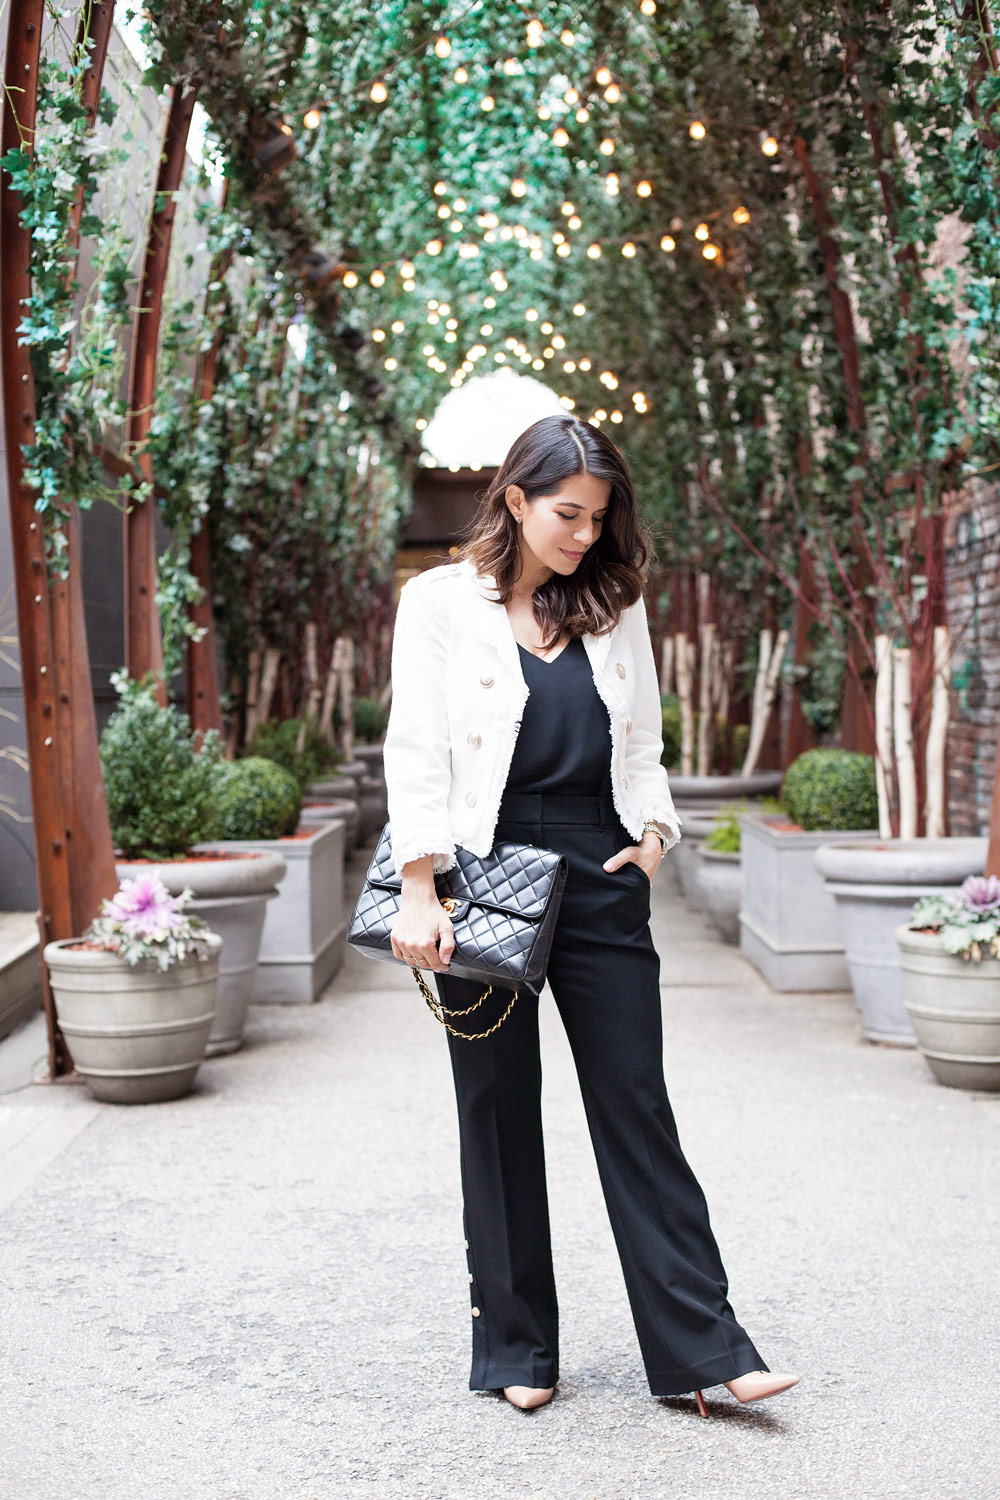 White House Black Market WHBM Workwear Black and White Outfit Post What to Wear to Work Black Wide Leg Pants Tweed Jacket New York City Fashion Blogger